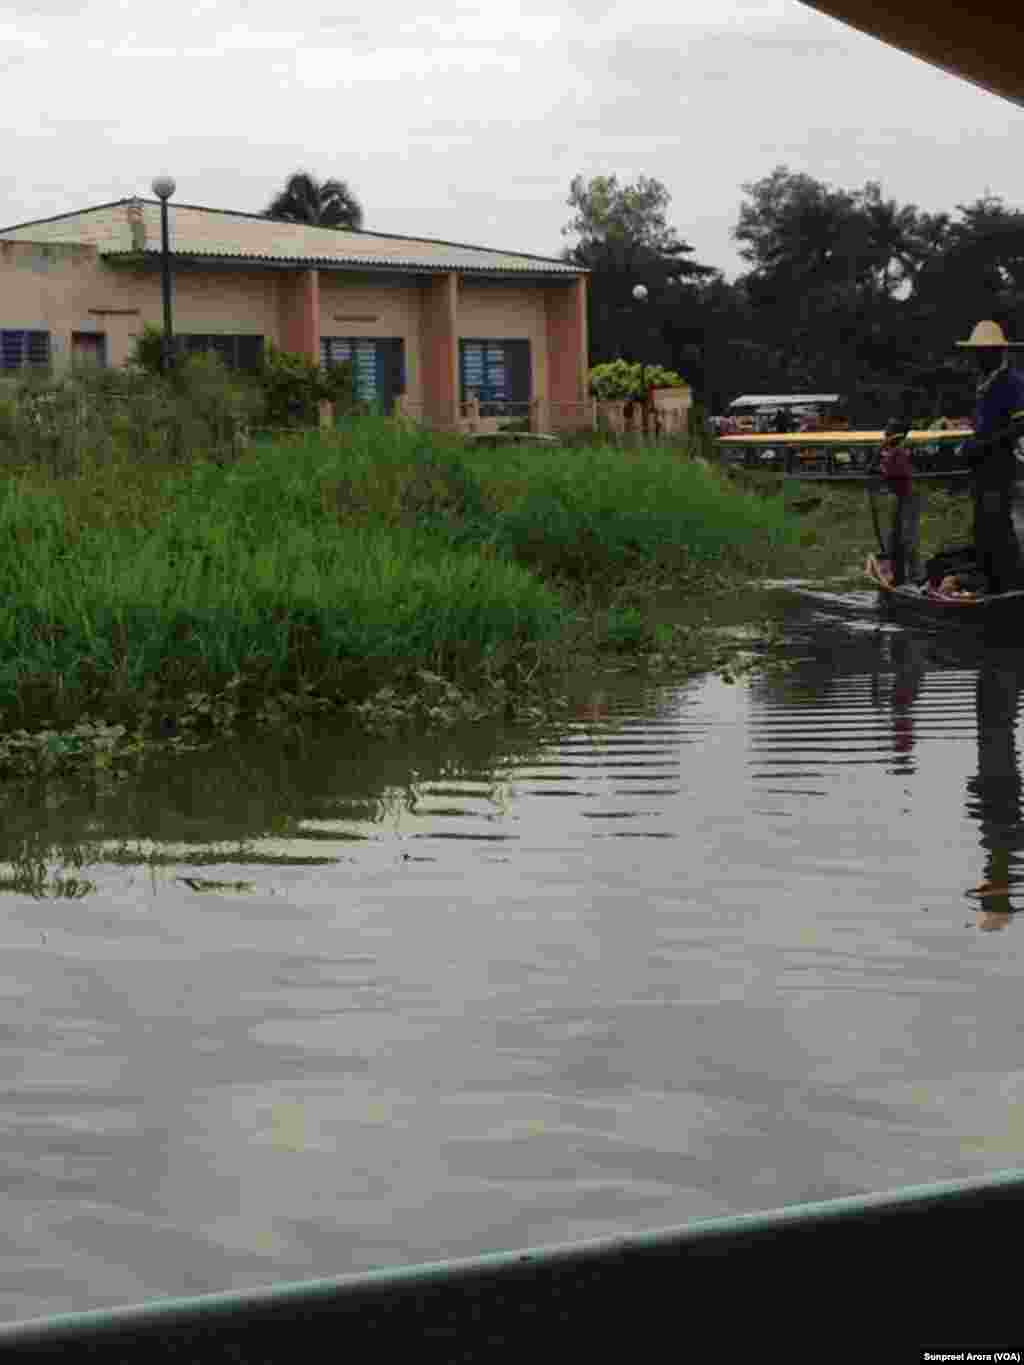 Boats approach a remote village where Michigan State University researchers test a fingerprint recognition system on infants and toddlers, Benin, Africa. (Sunpreet Arora)